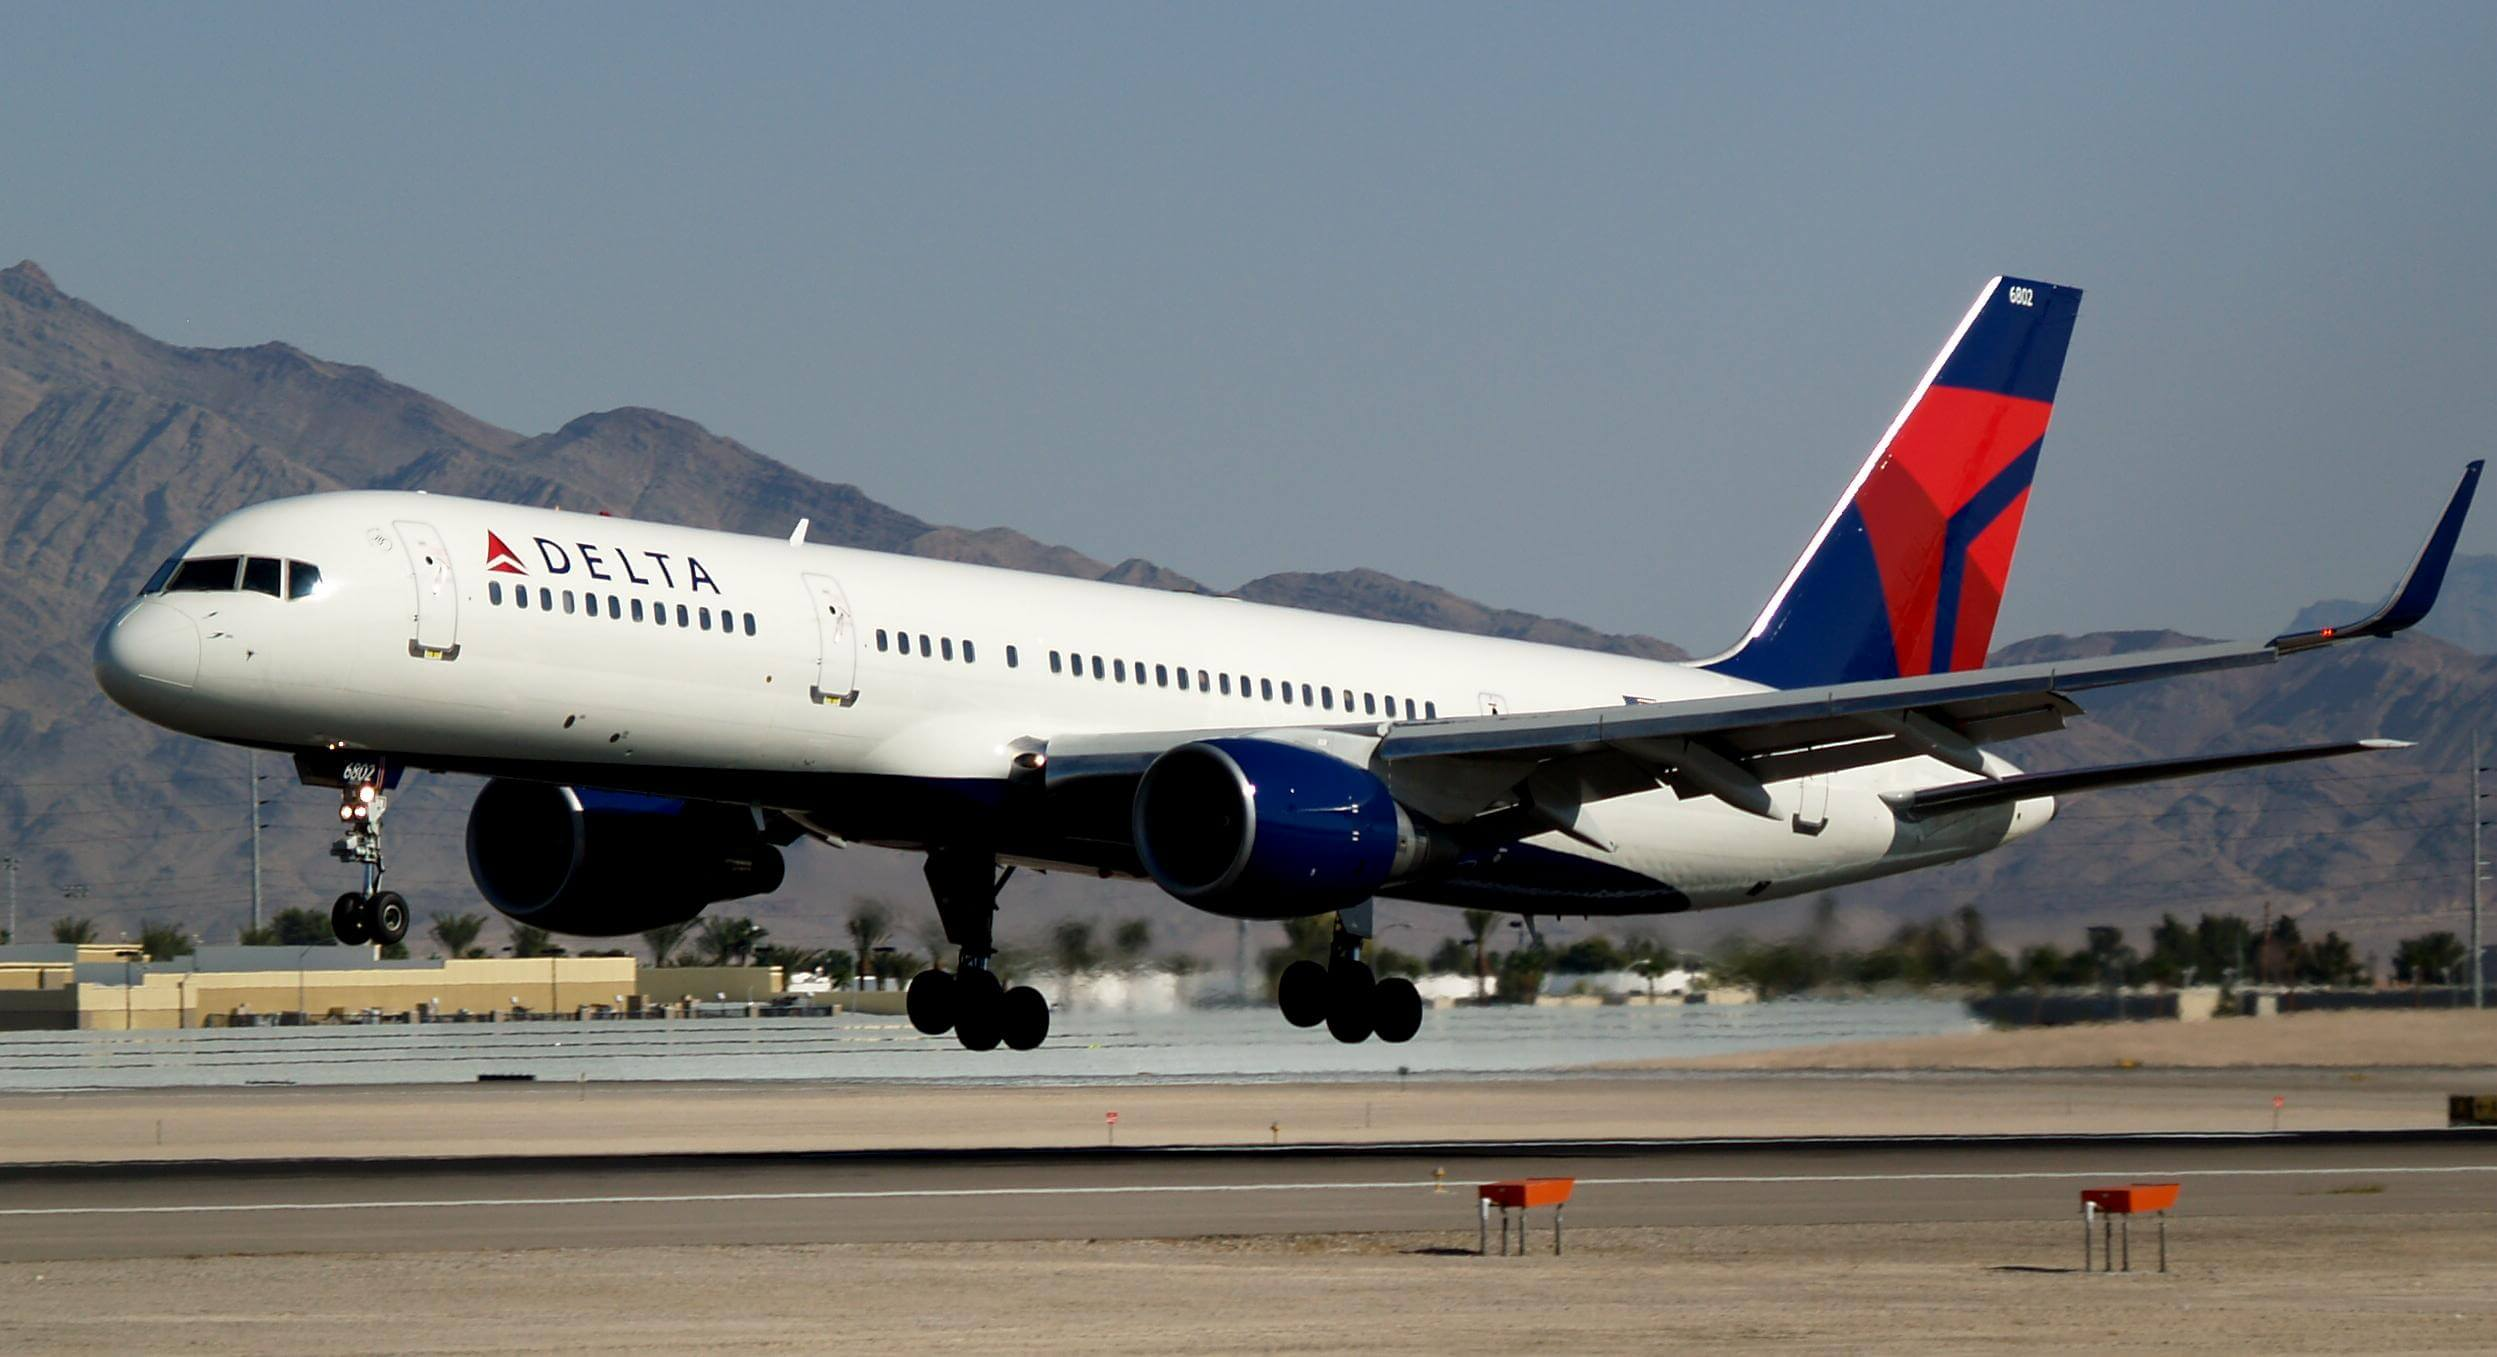 Delta Air Lines customer data compromised including payment information